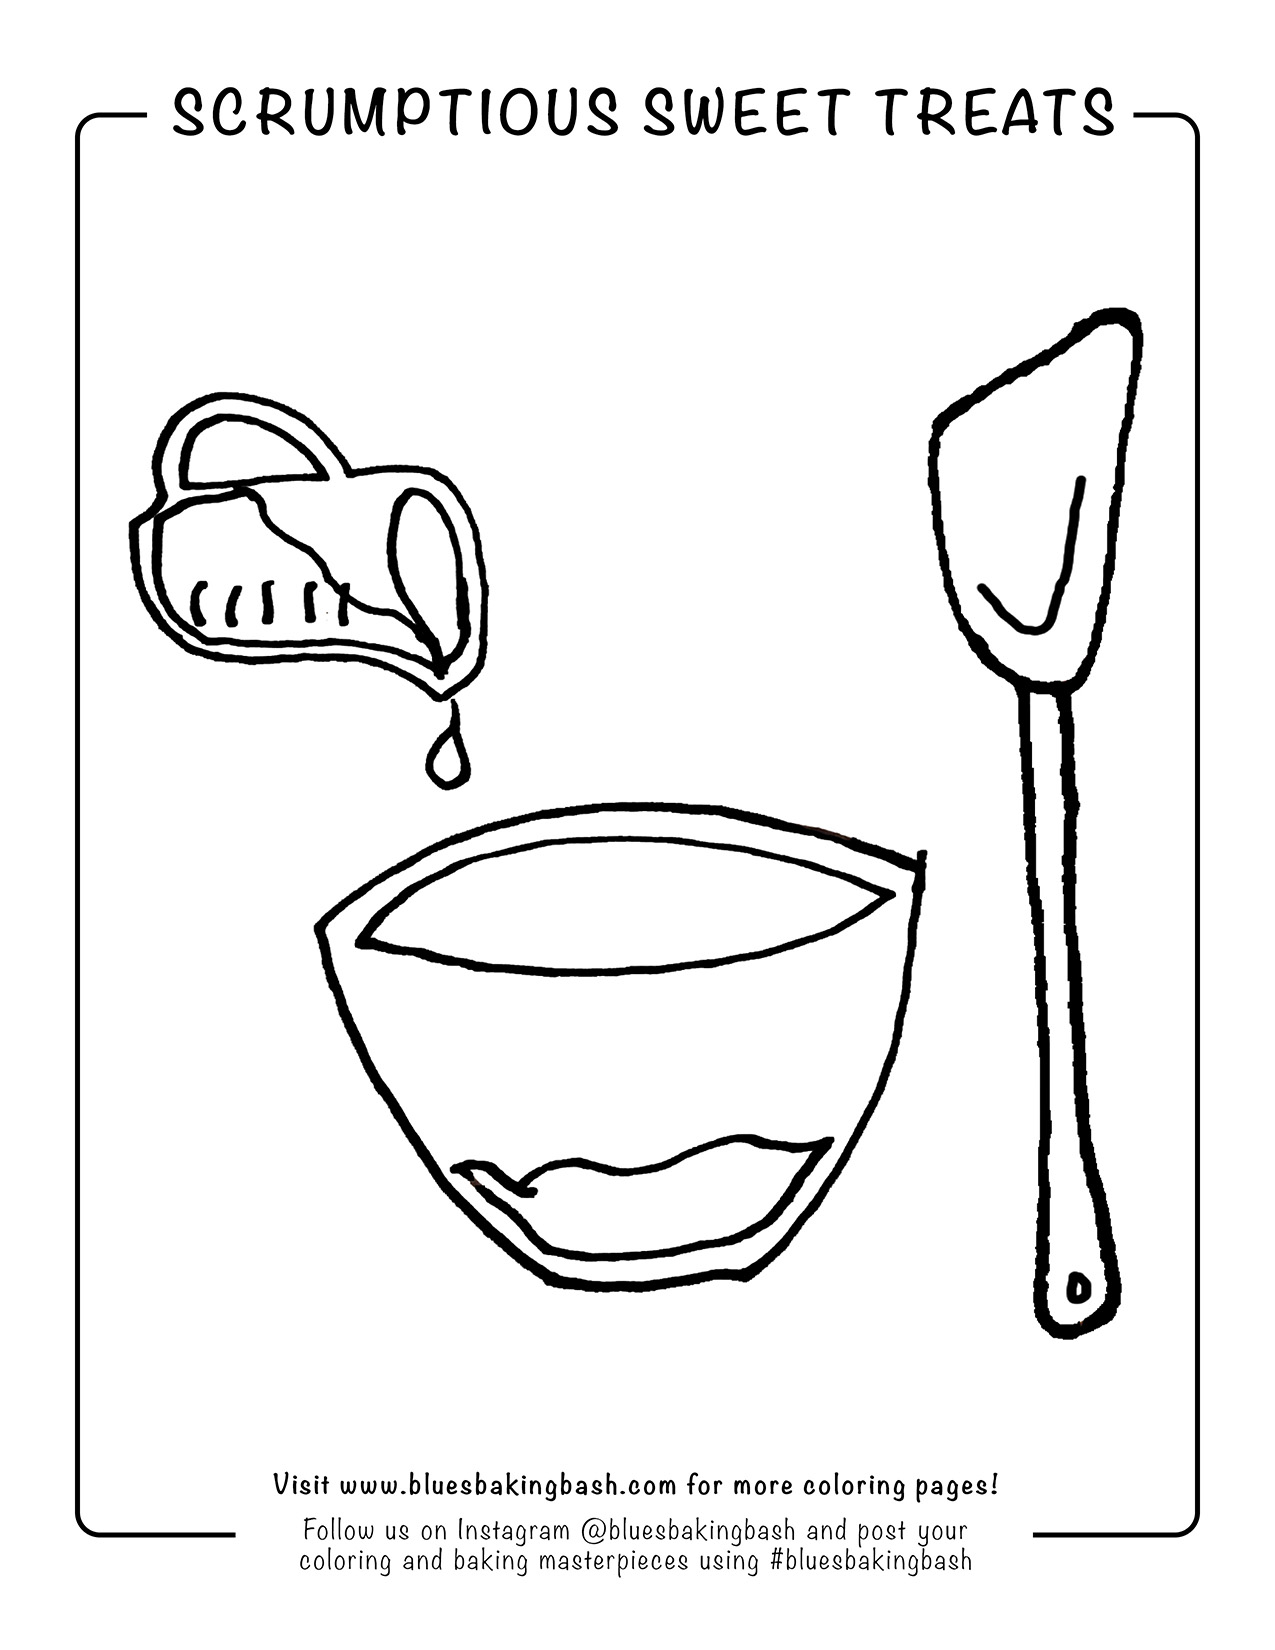 Baking Coloring Pages : baking, coloring, pages, Coloring, Pages, Blue's, Baking